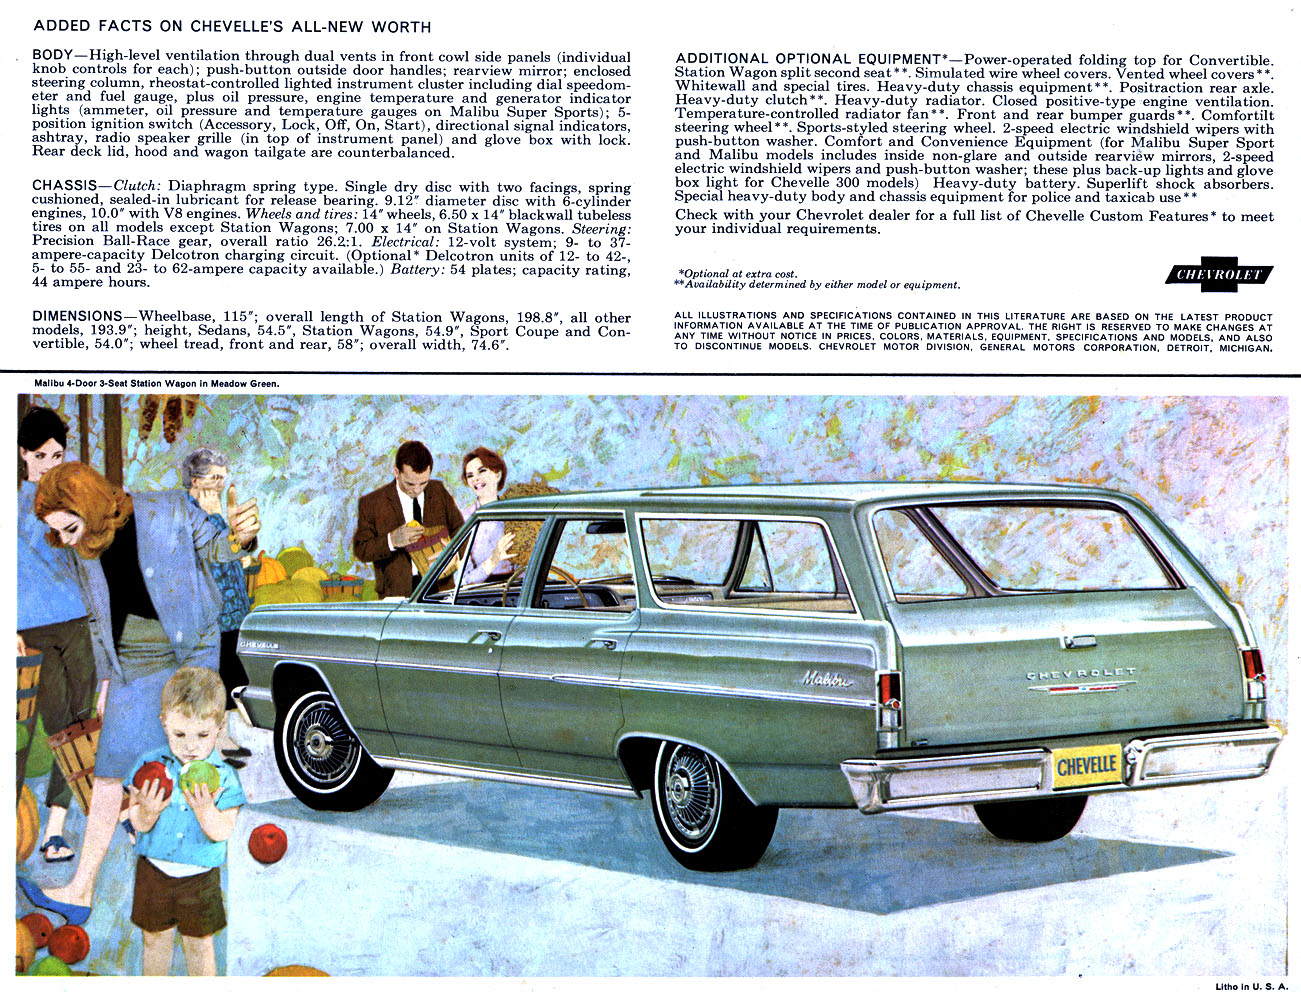 1964 Chevelle OEM Brochure - Page 10